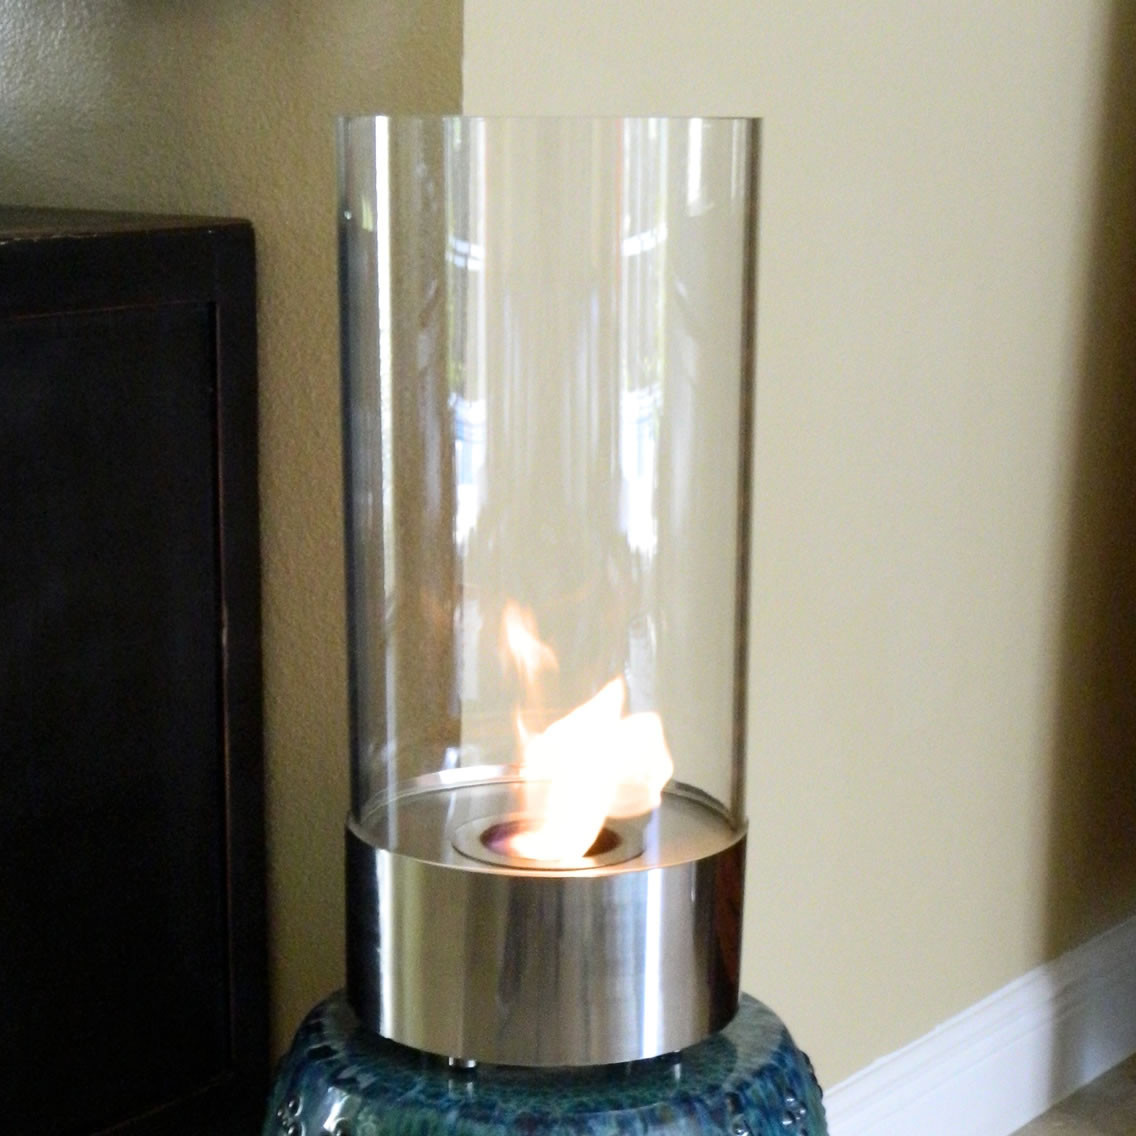 Nu Flame Cristallo Stunning Tabletop Fire Cylinder Picture 310